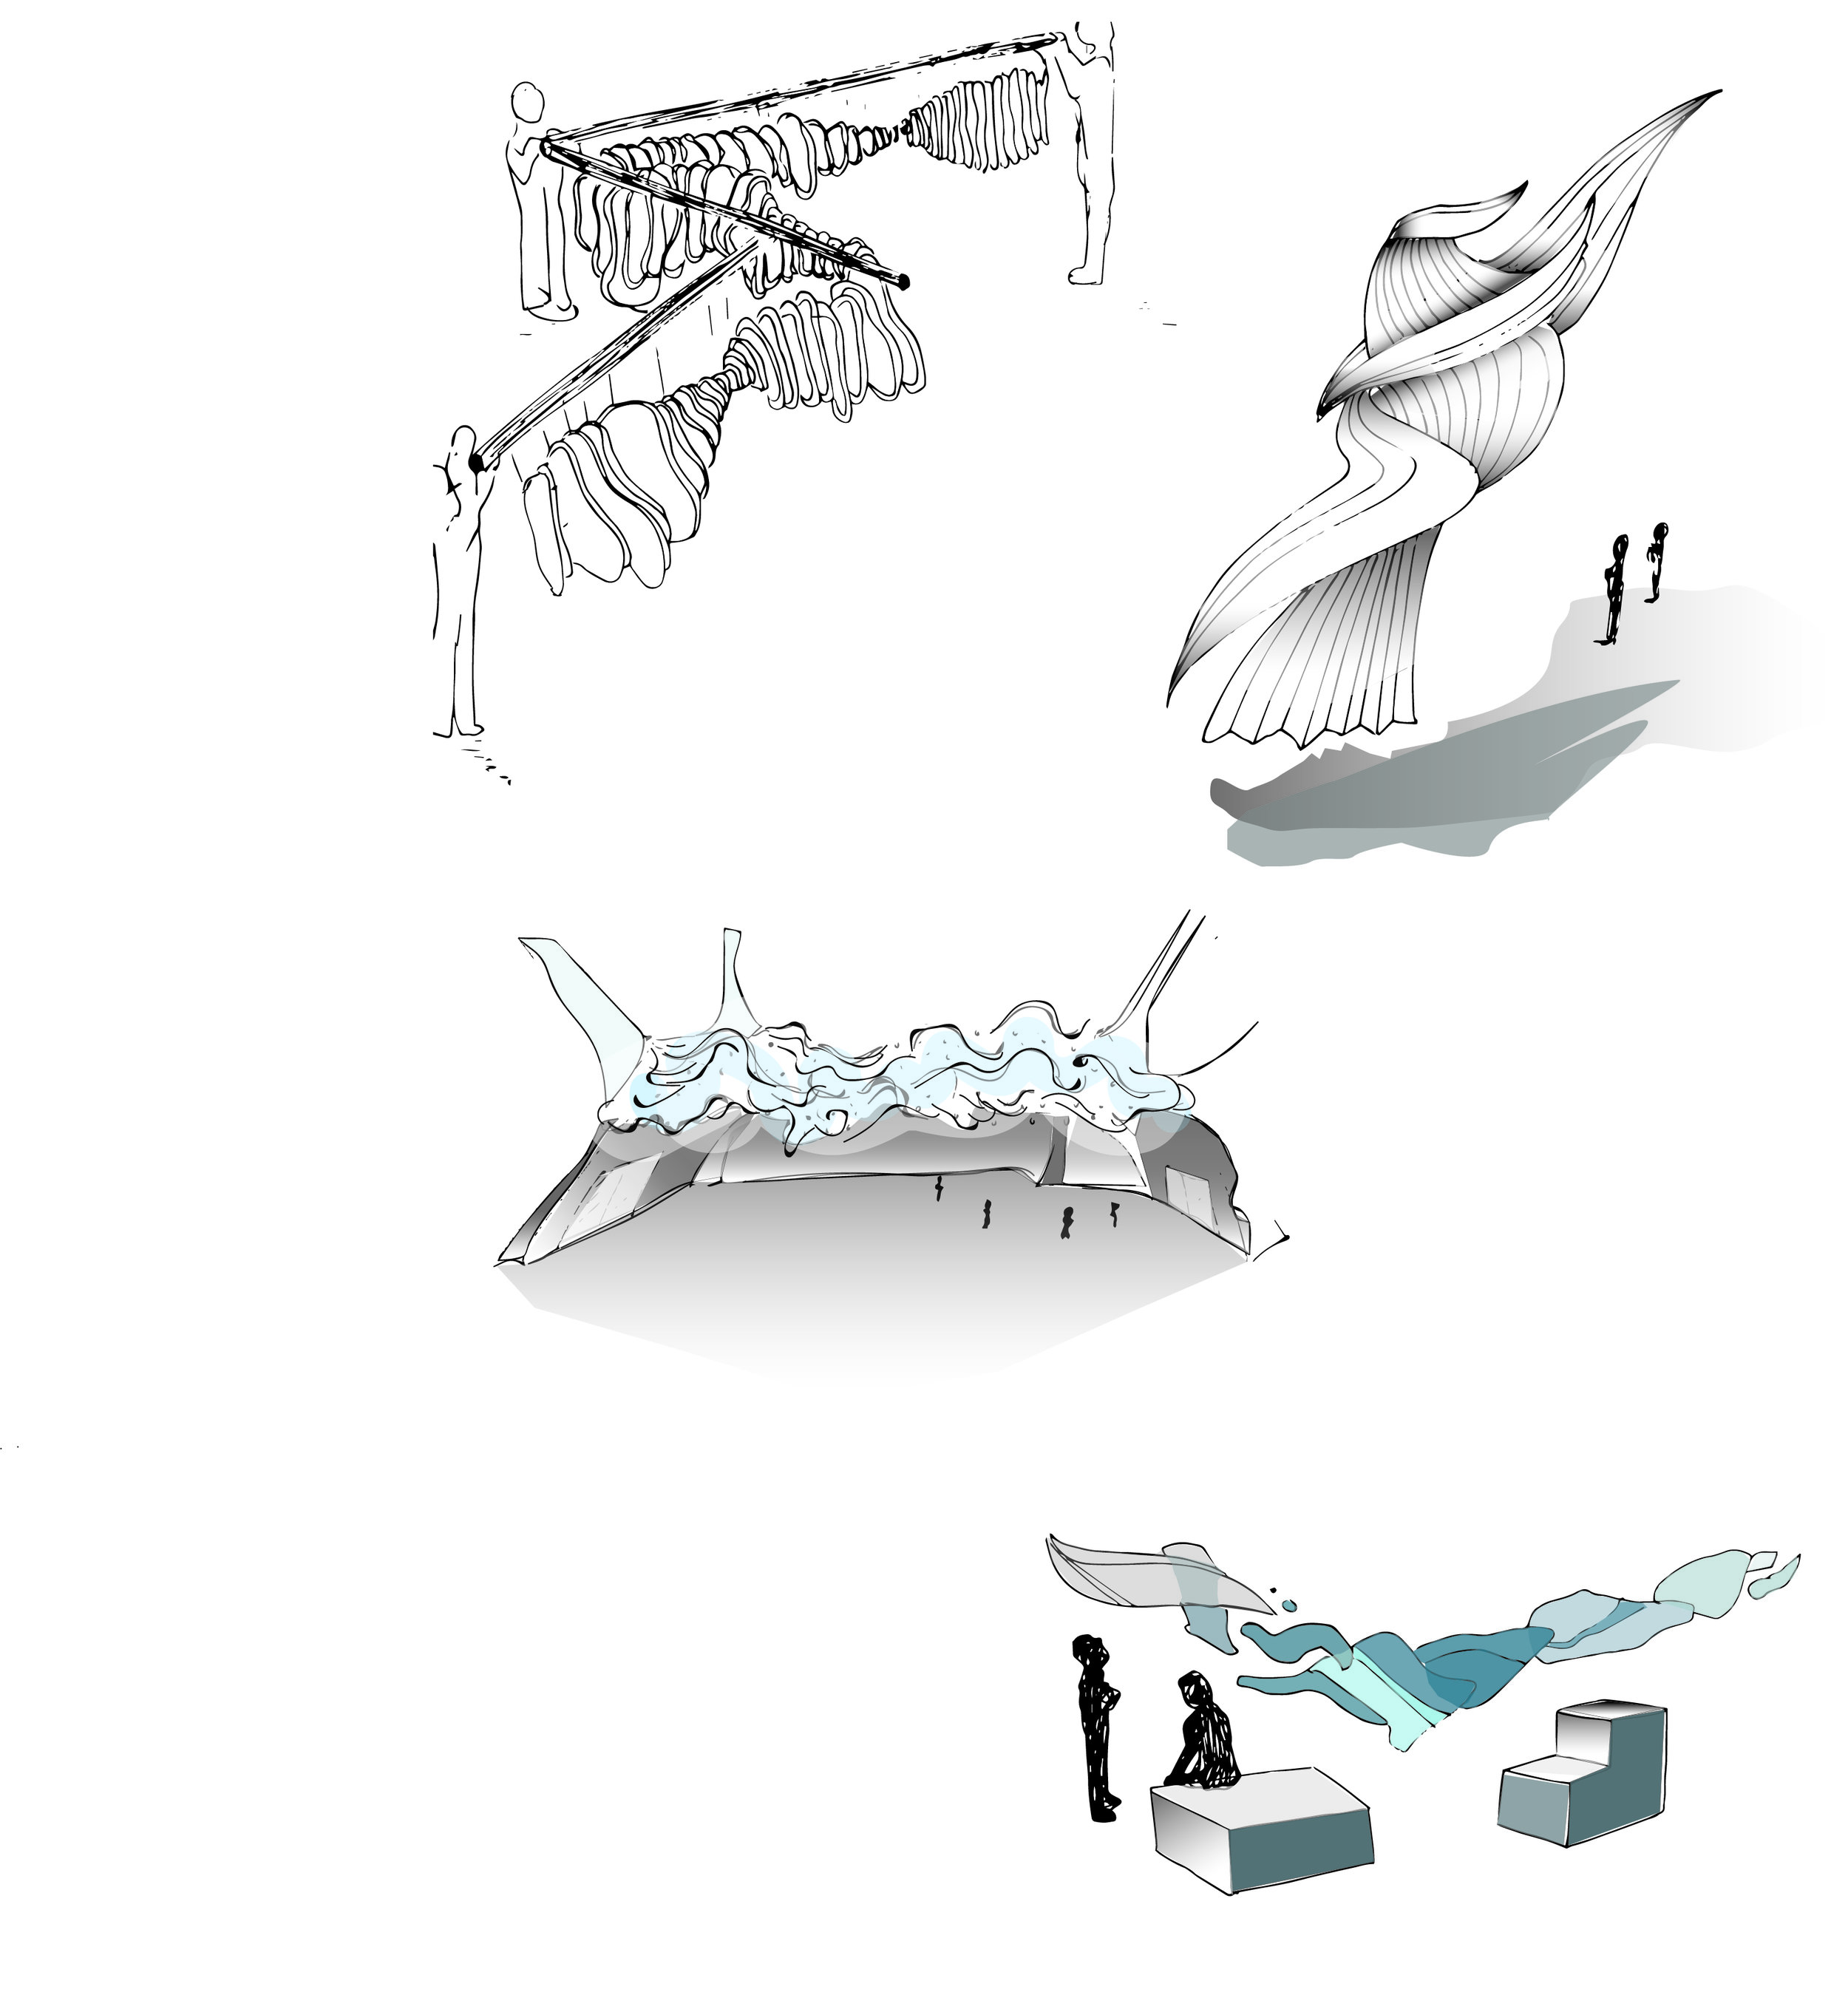 Quick Concept sketches for future movement-based installations.